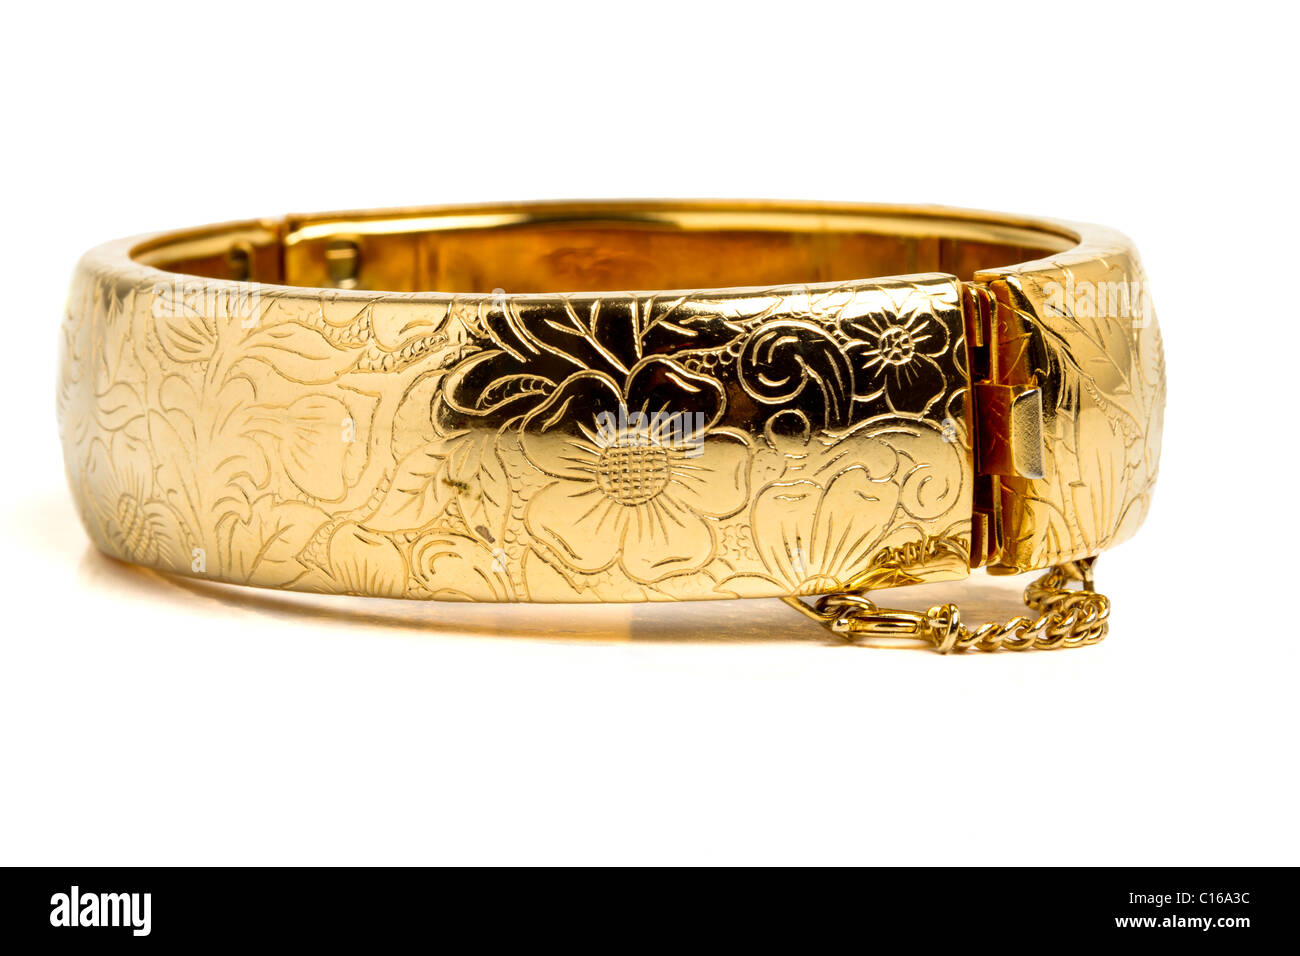 Vintage gold bangle from low perspective isolated on white. - Stock Image